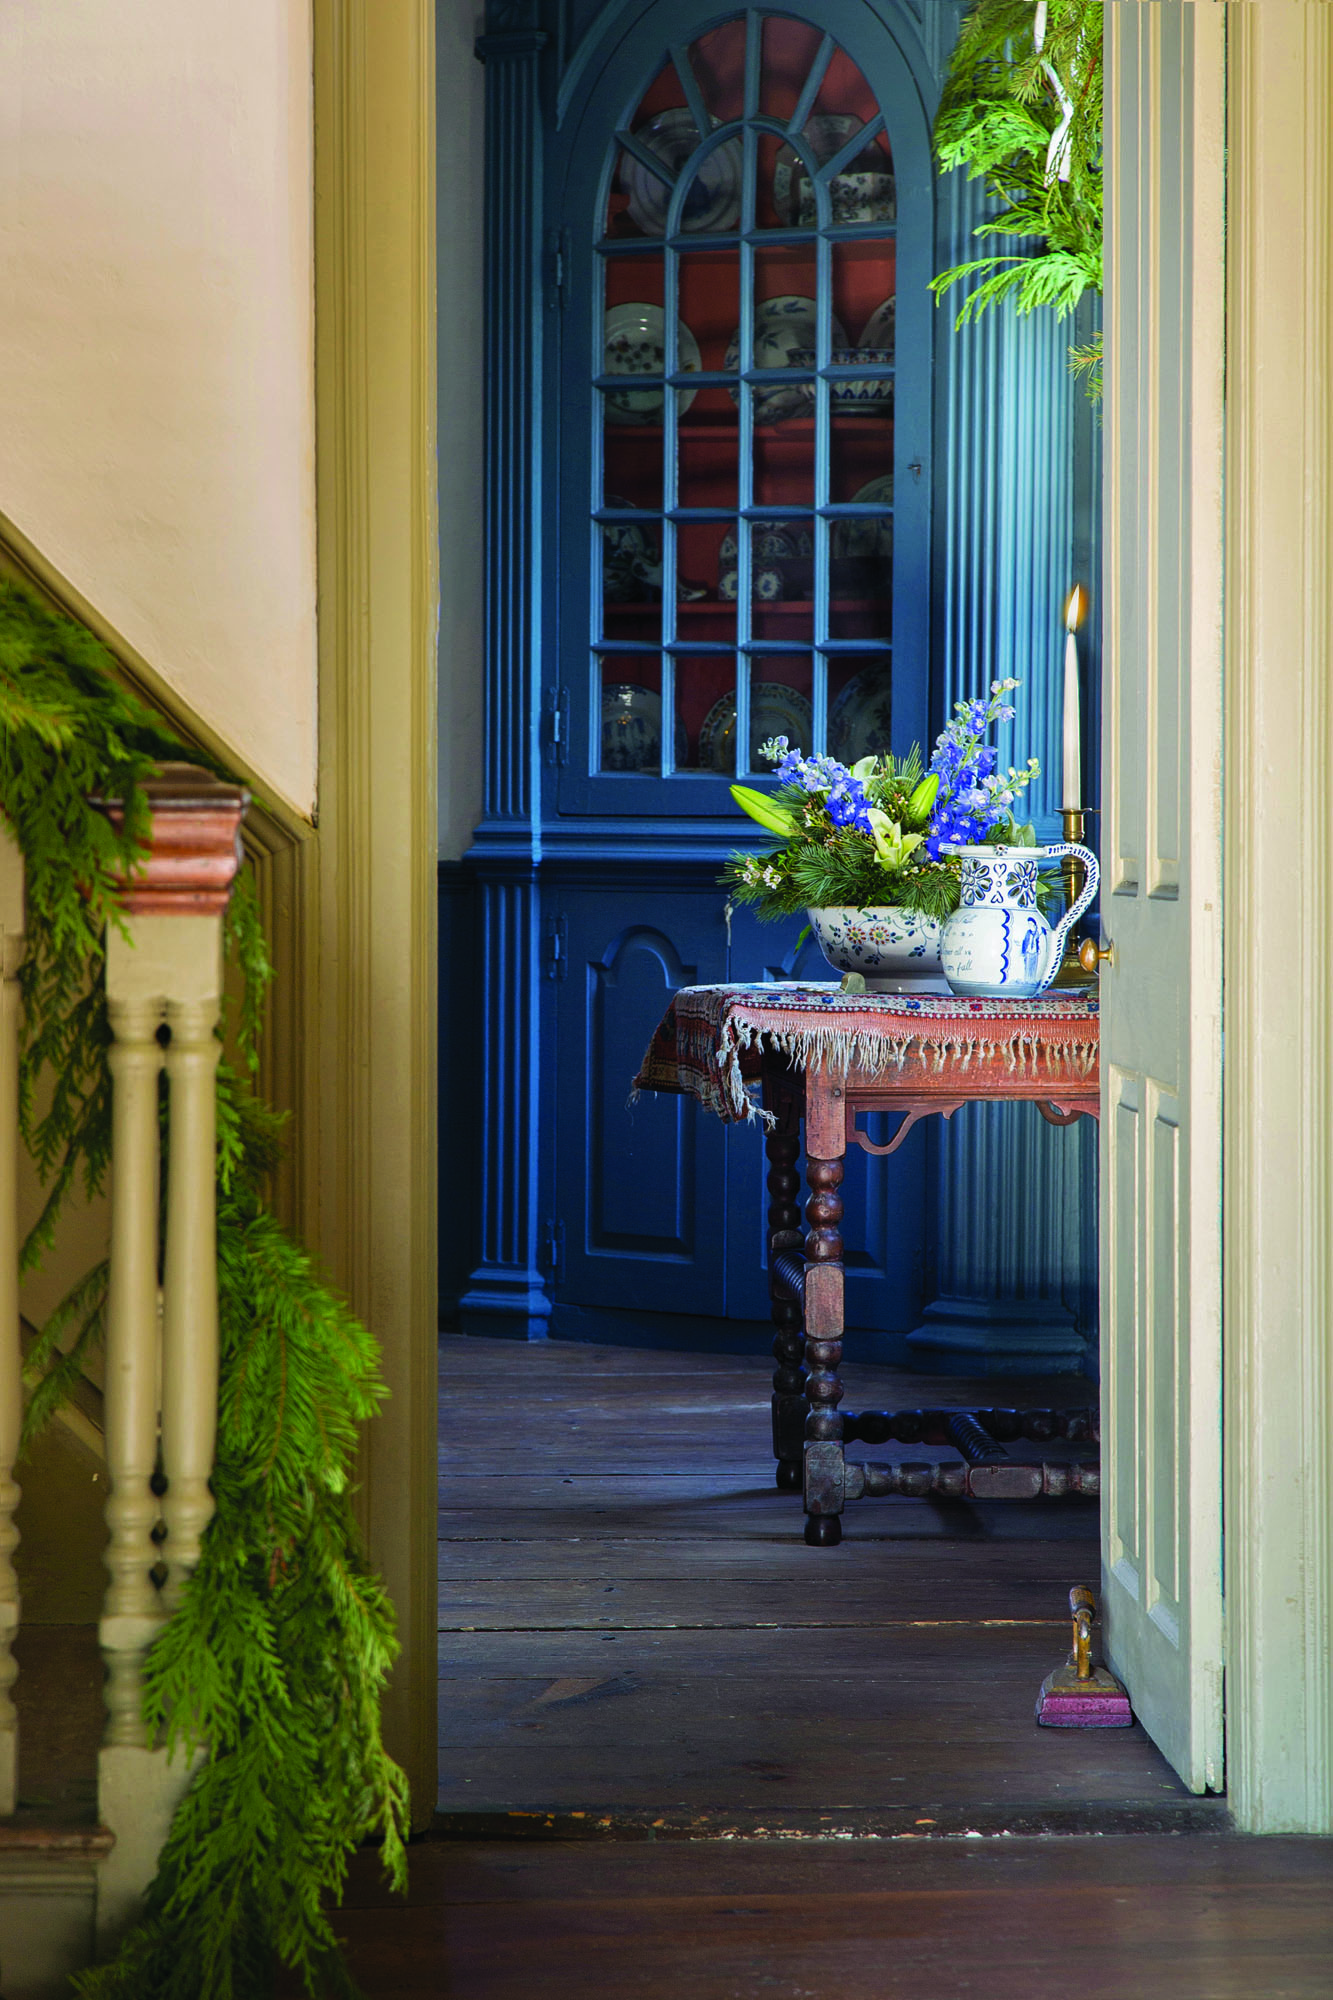 The less formal staircase in the 1760s Georgian block is swagged with plain greenery. Through the doorway is a glimpse of the Burbank parlor, with its classical corner cabinet featuring fluted pilasters and an arched, multi-light door.